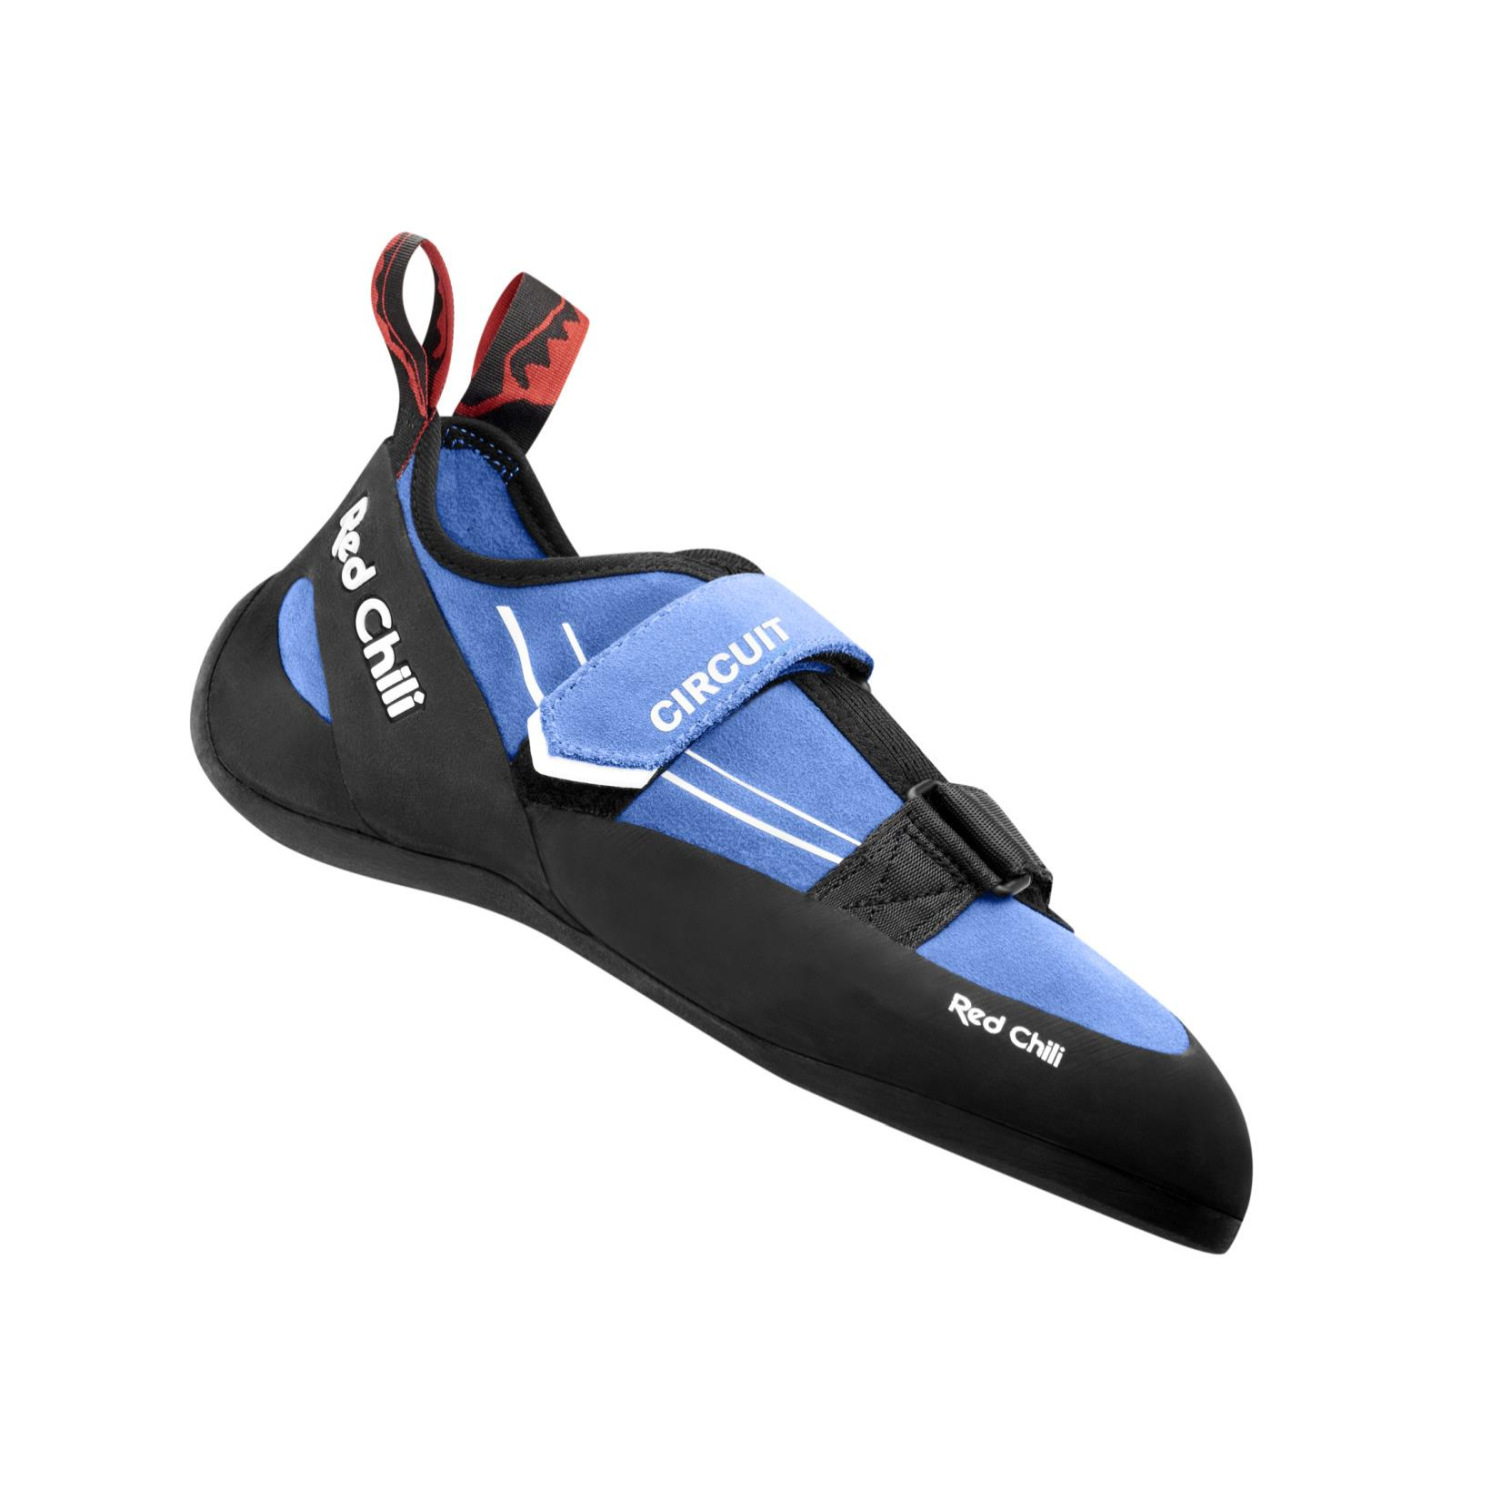 Red Chili Circuit VCR Herren Kletter- und Boulderschuhe blau Gr. 7,0 UK von Red Chili